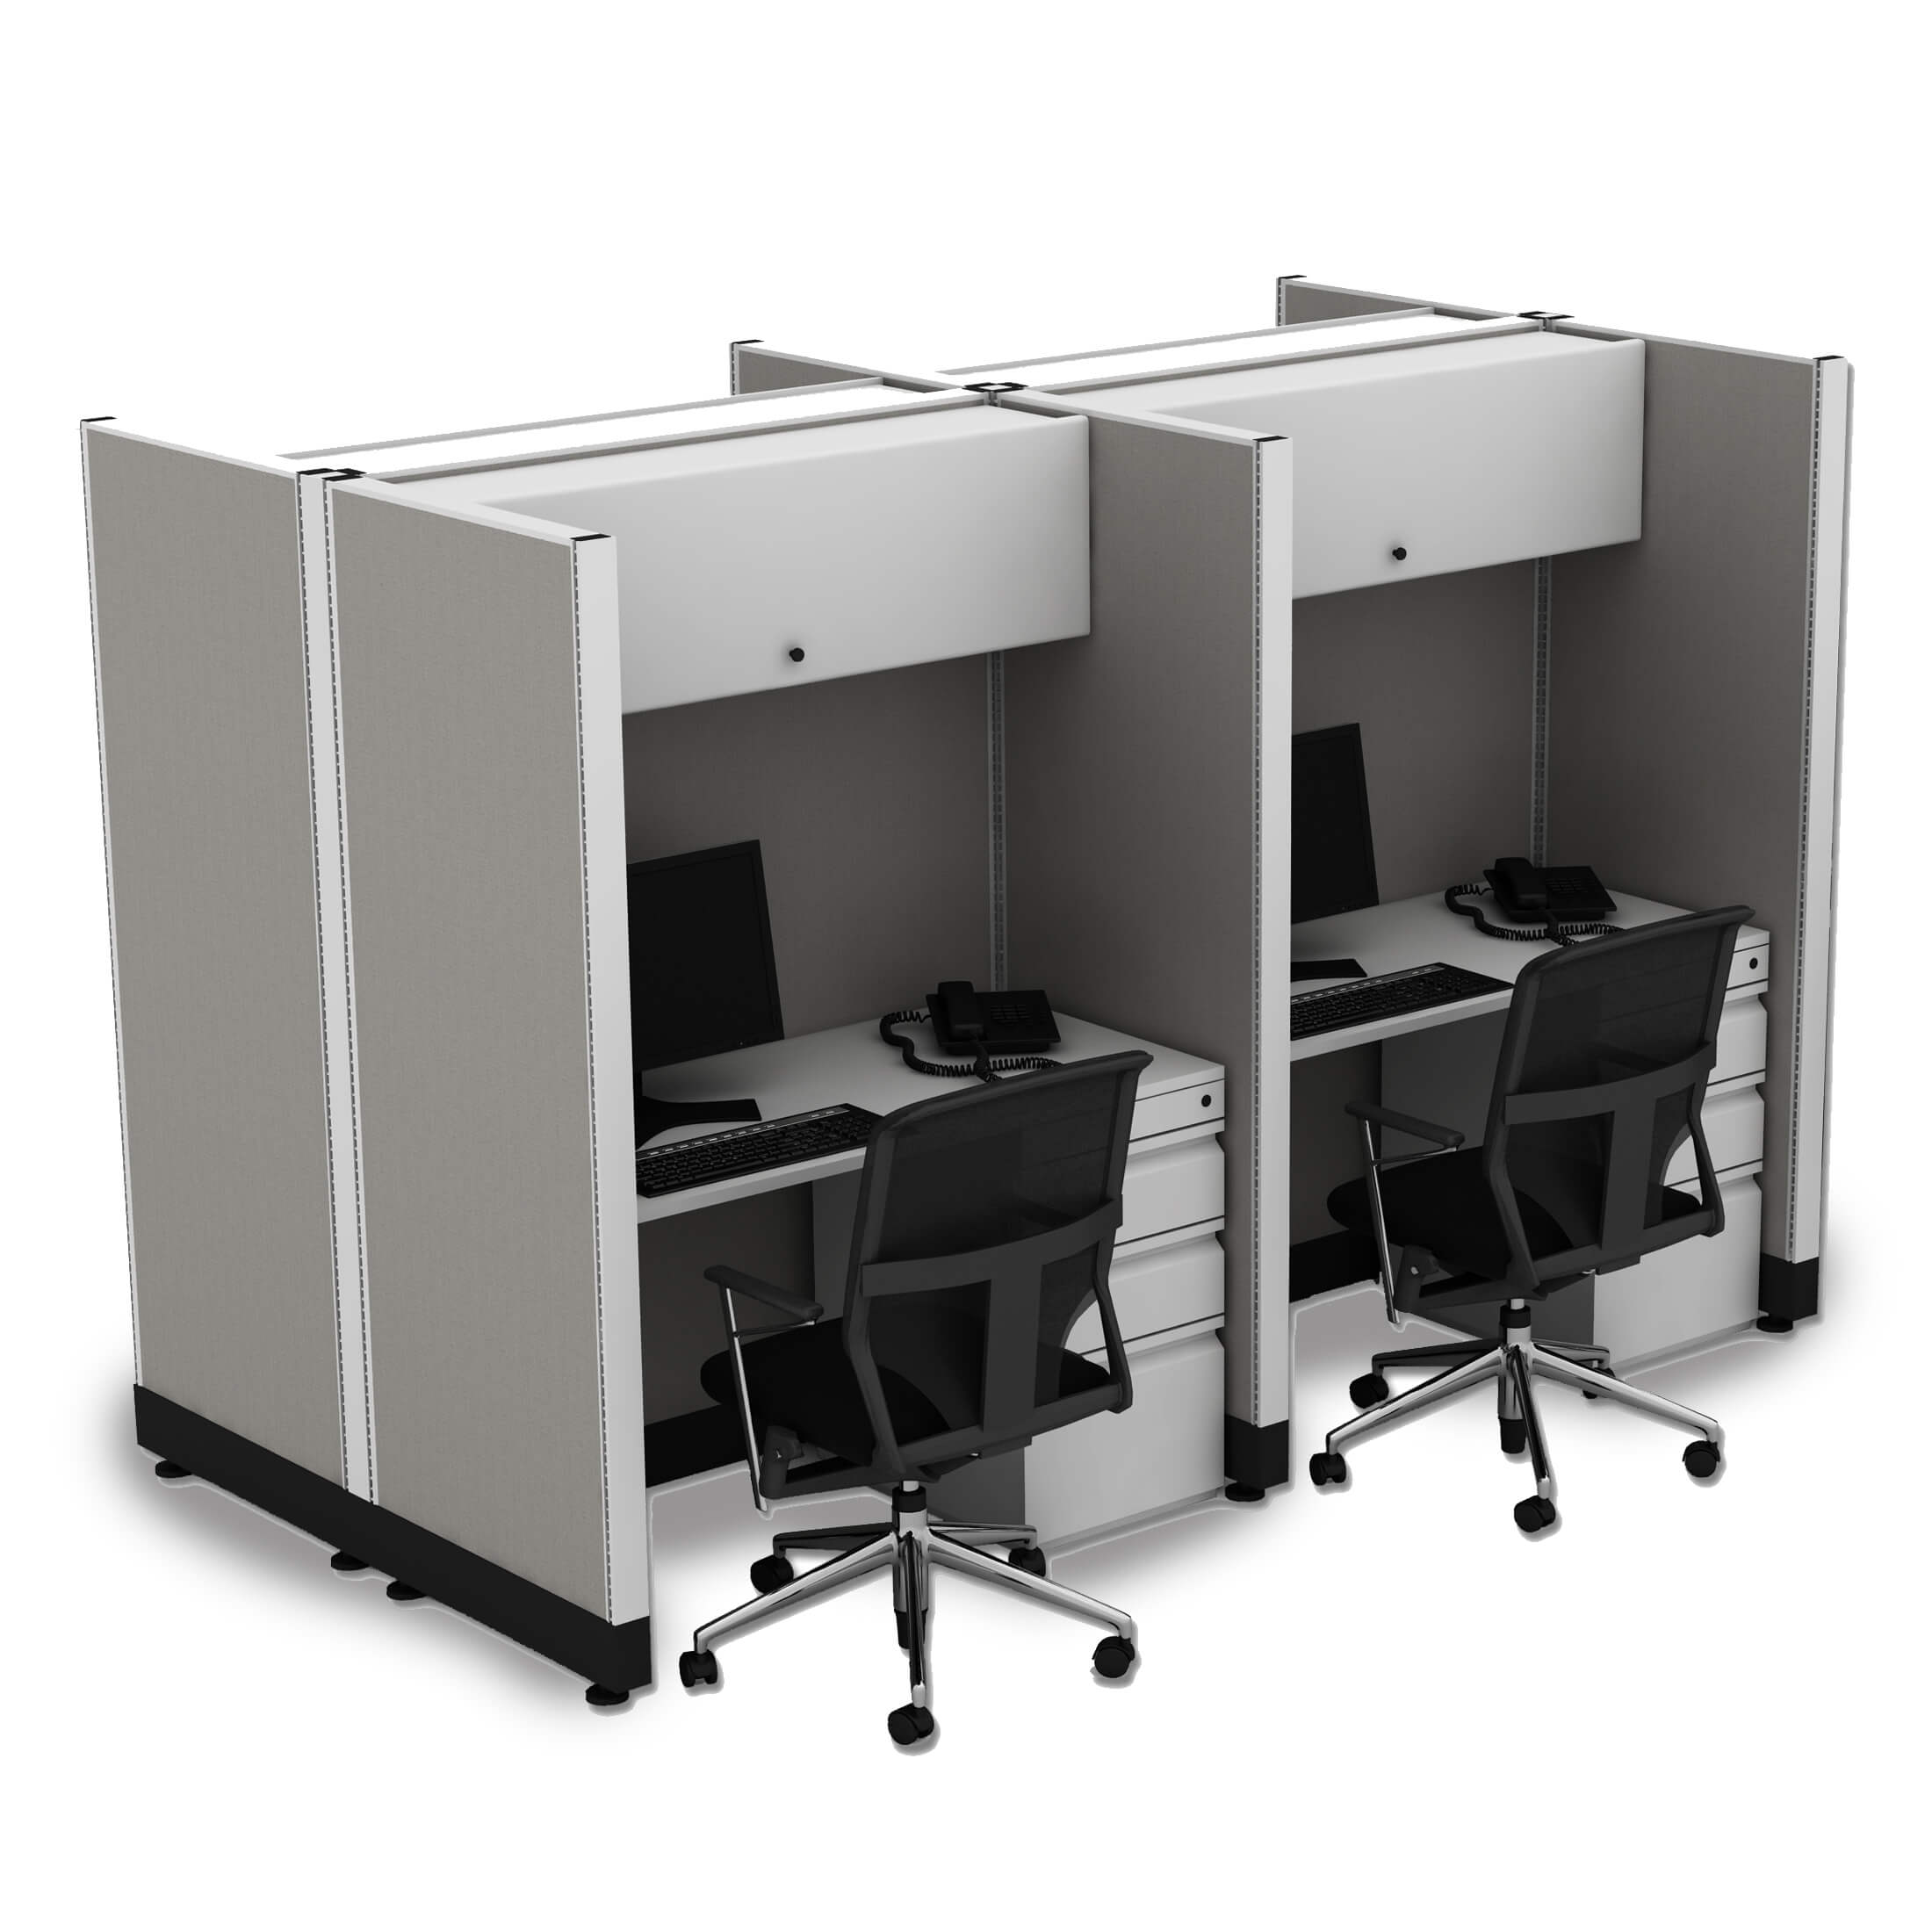 hot-desking-hoteling-stations-4-pack-powered.jpg